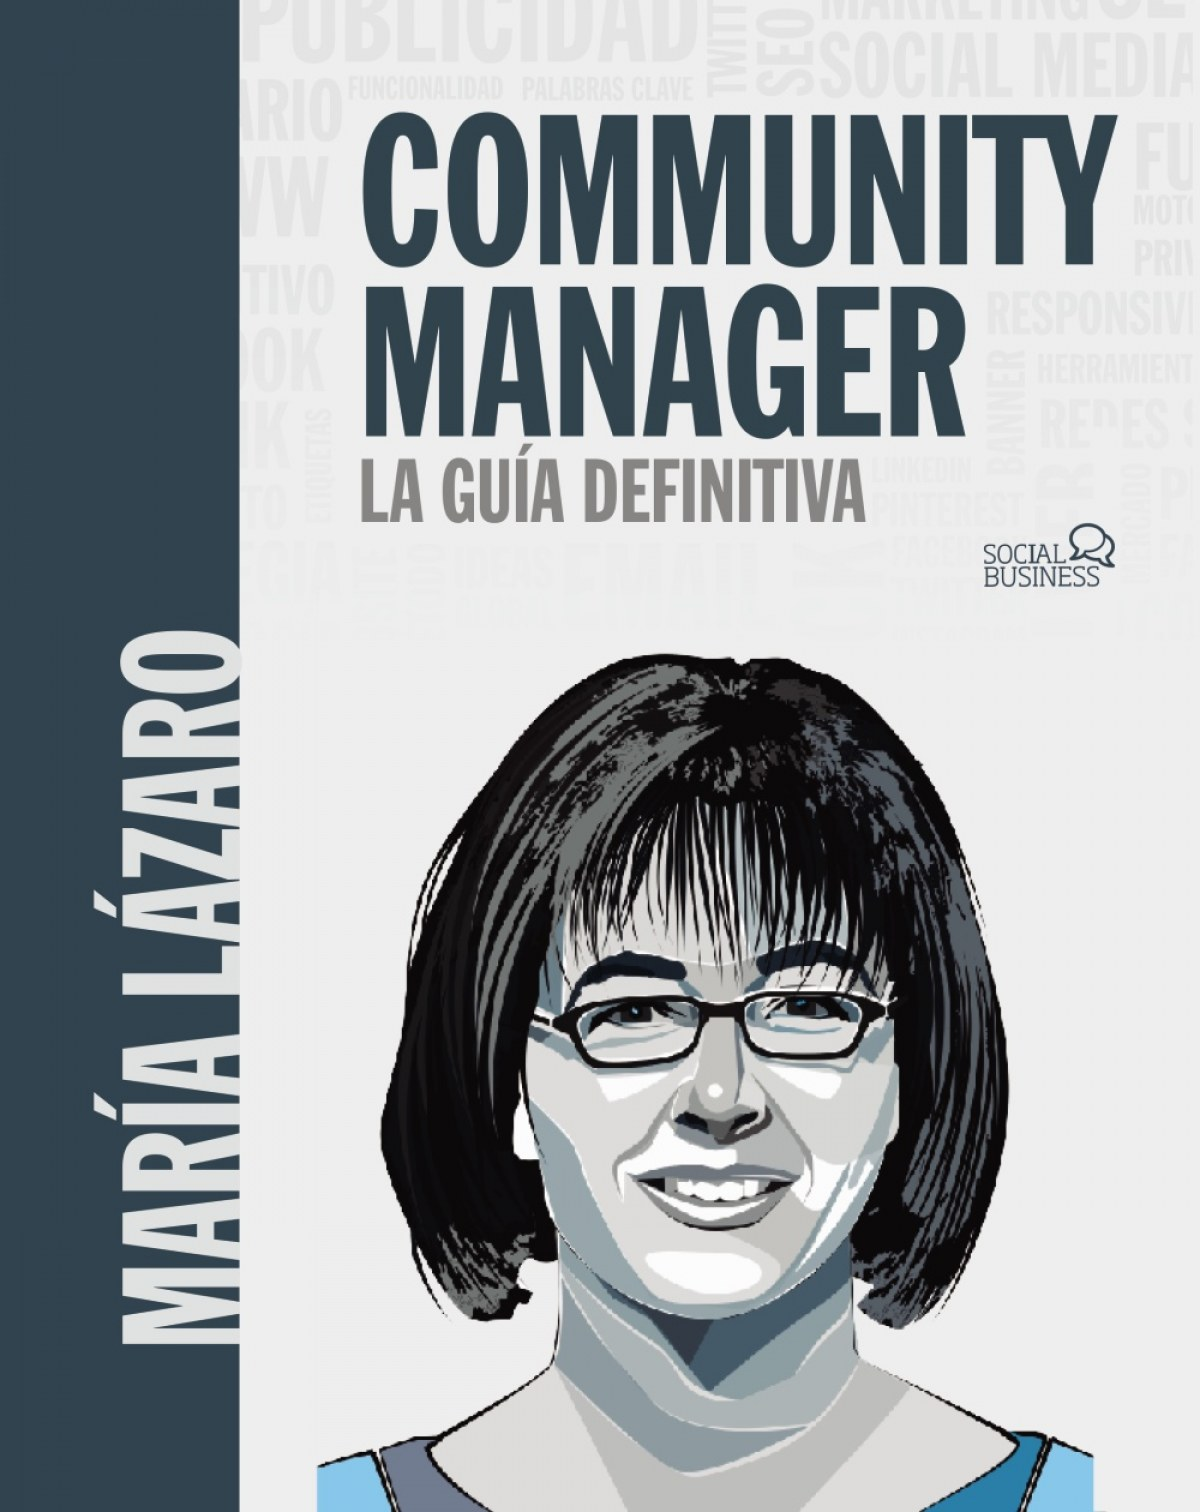 COMMUNITY MANAGER 9788441540866